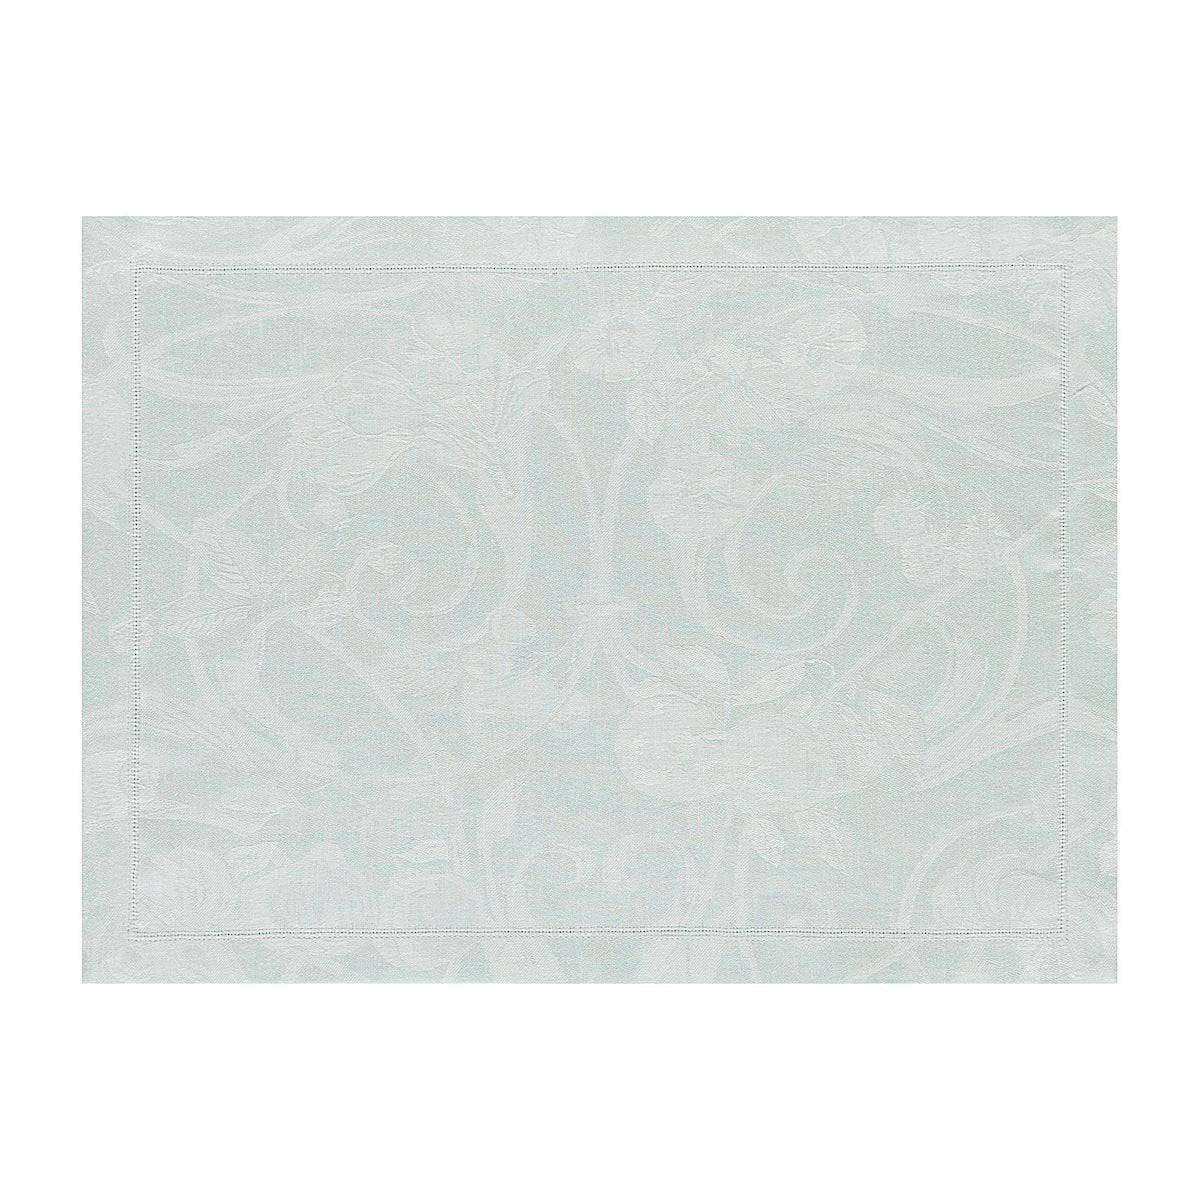 Le Jacquard Français Table Linen Tivoli in Mist Fig Linens placemat